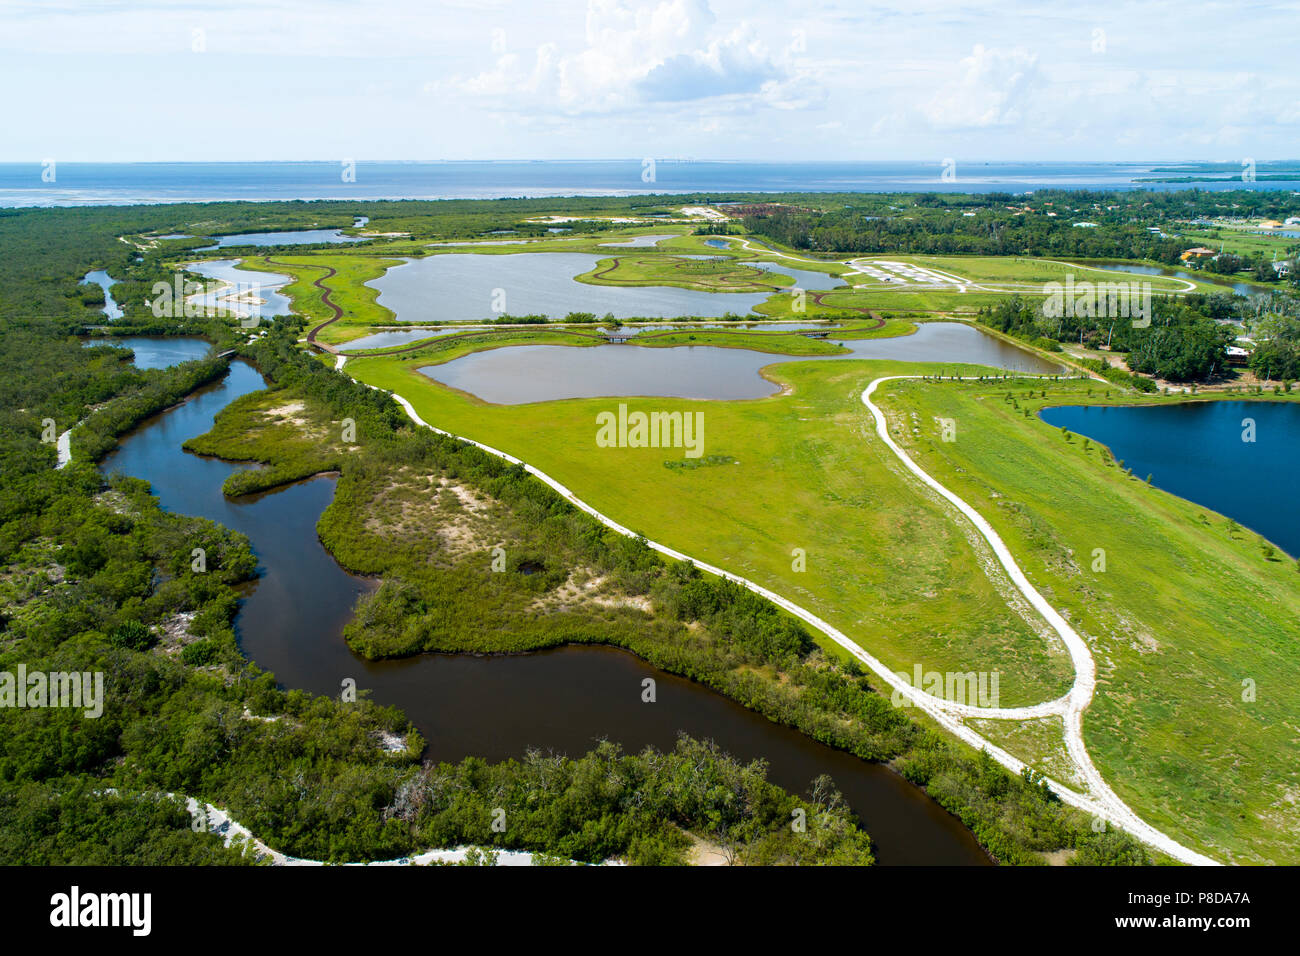 Robinson Preserve Bradenton, A 487-acre mosaic of mud flats, mangrove swamps,  beaches and observation tower - Stock Image